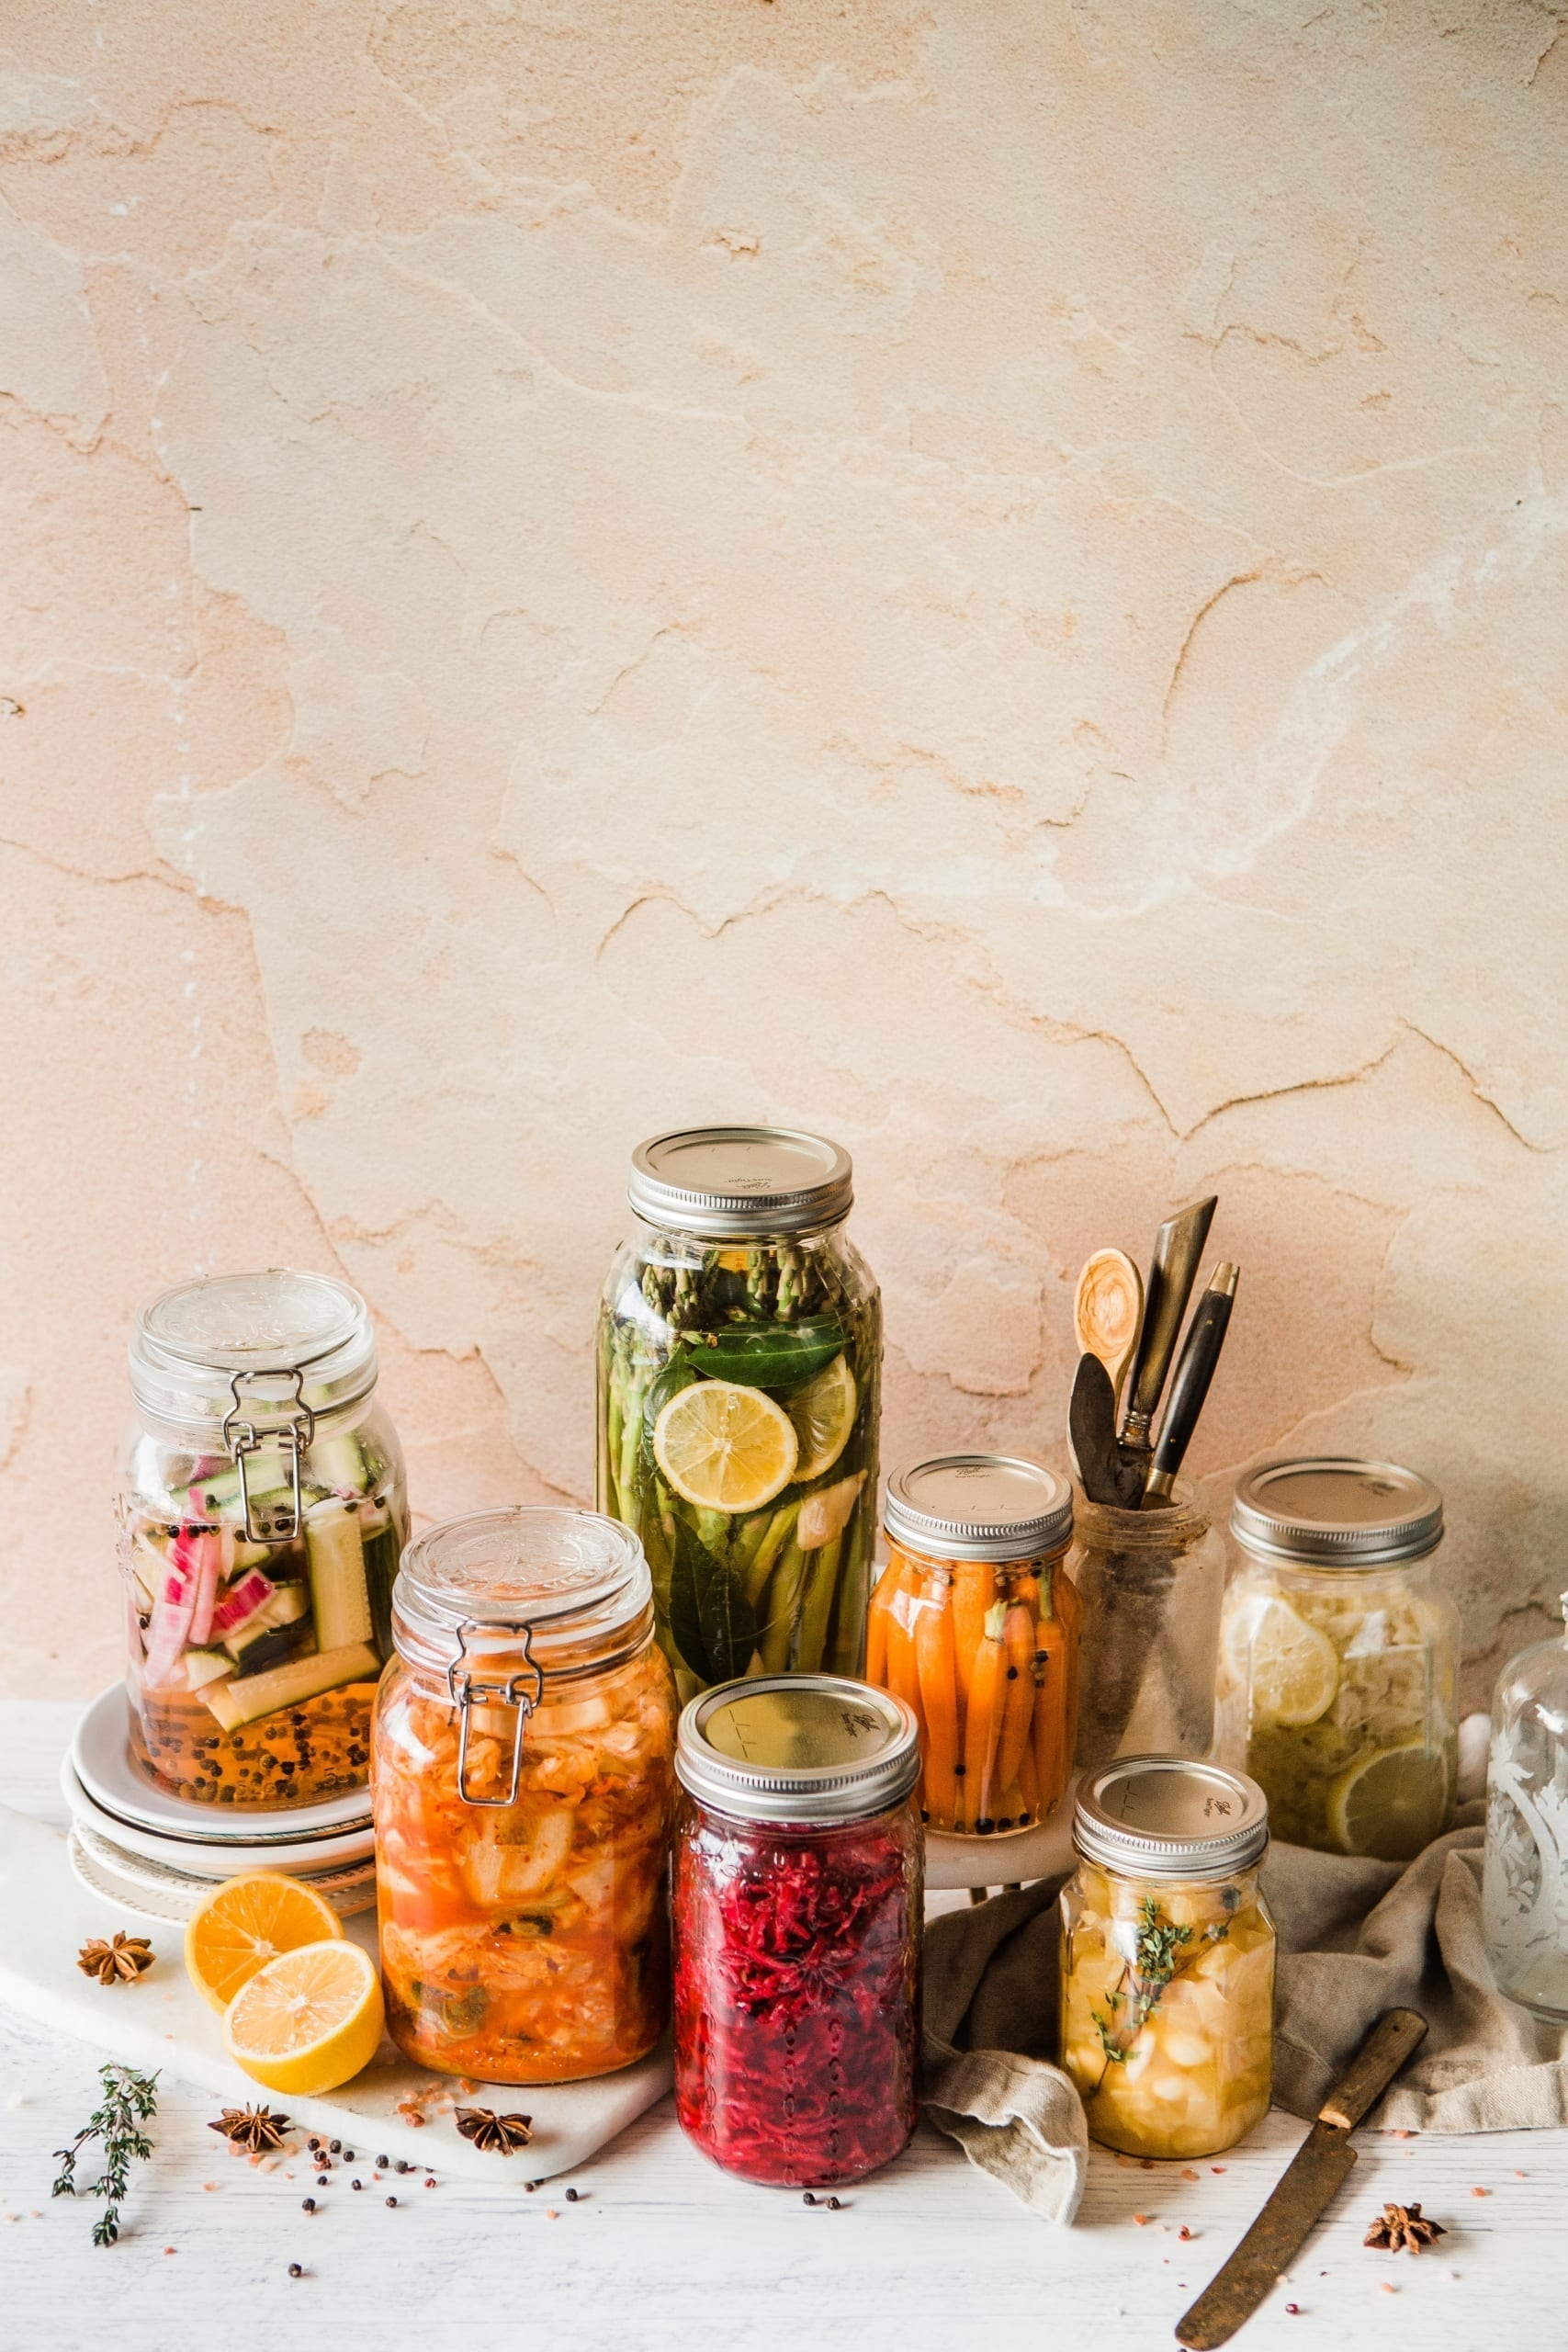 ingredients of homemade pickles